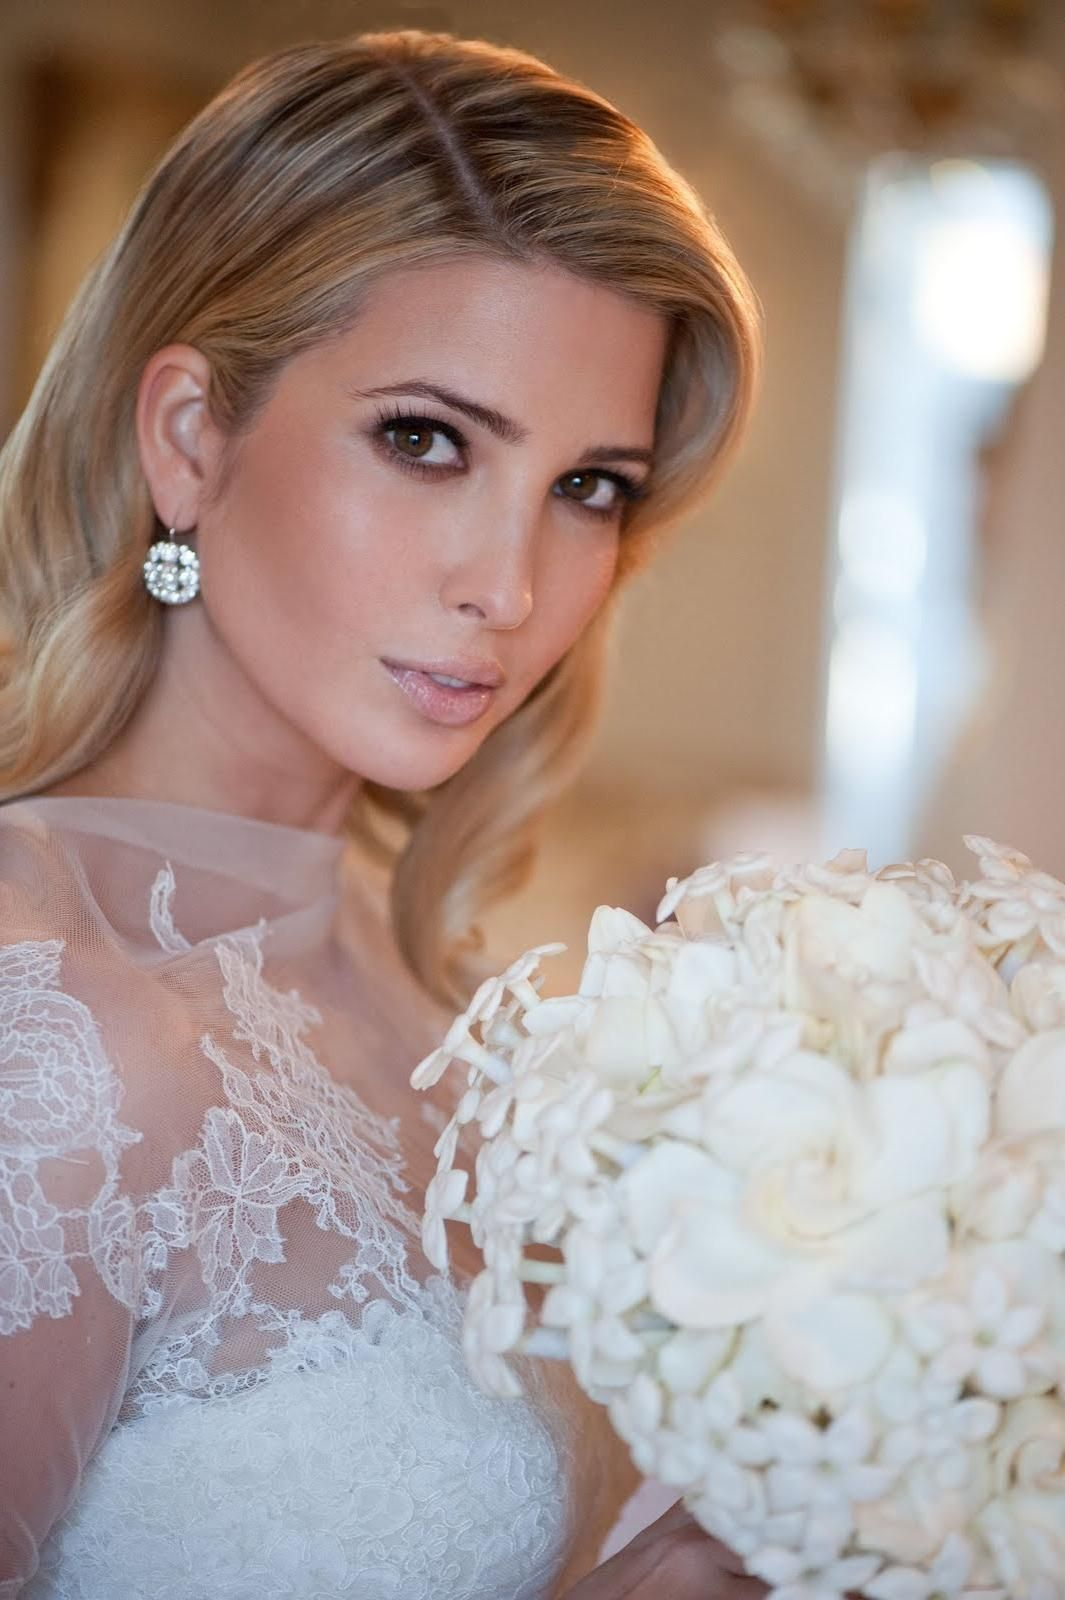 Images ivanka trump wedding dress | Beautiful people | Pinterest ...